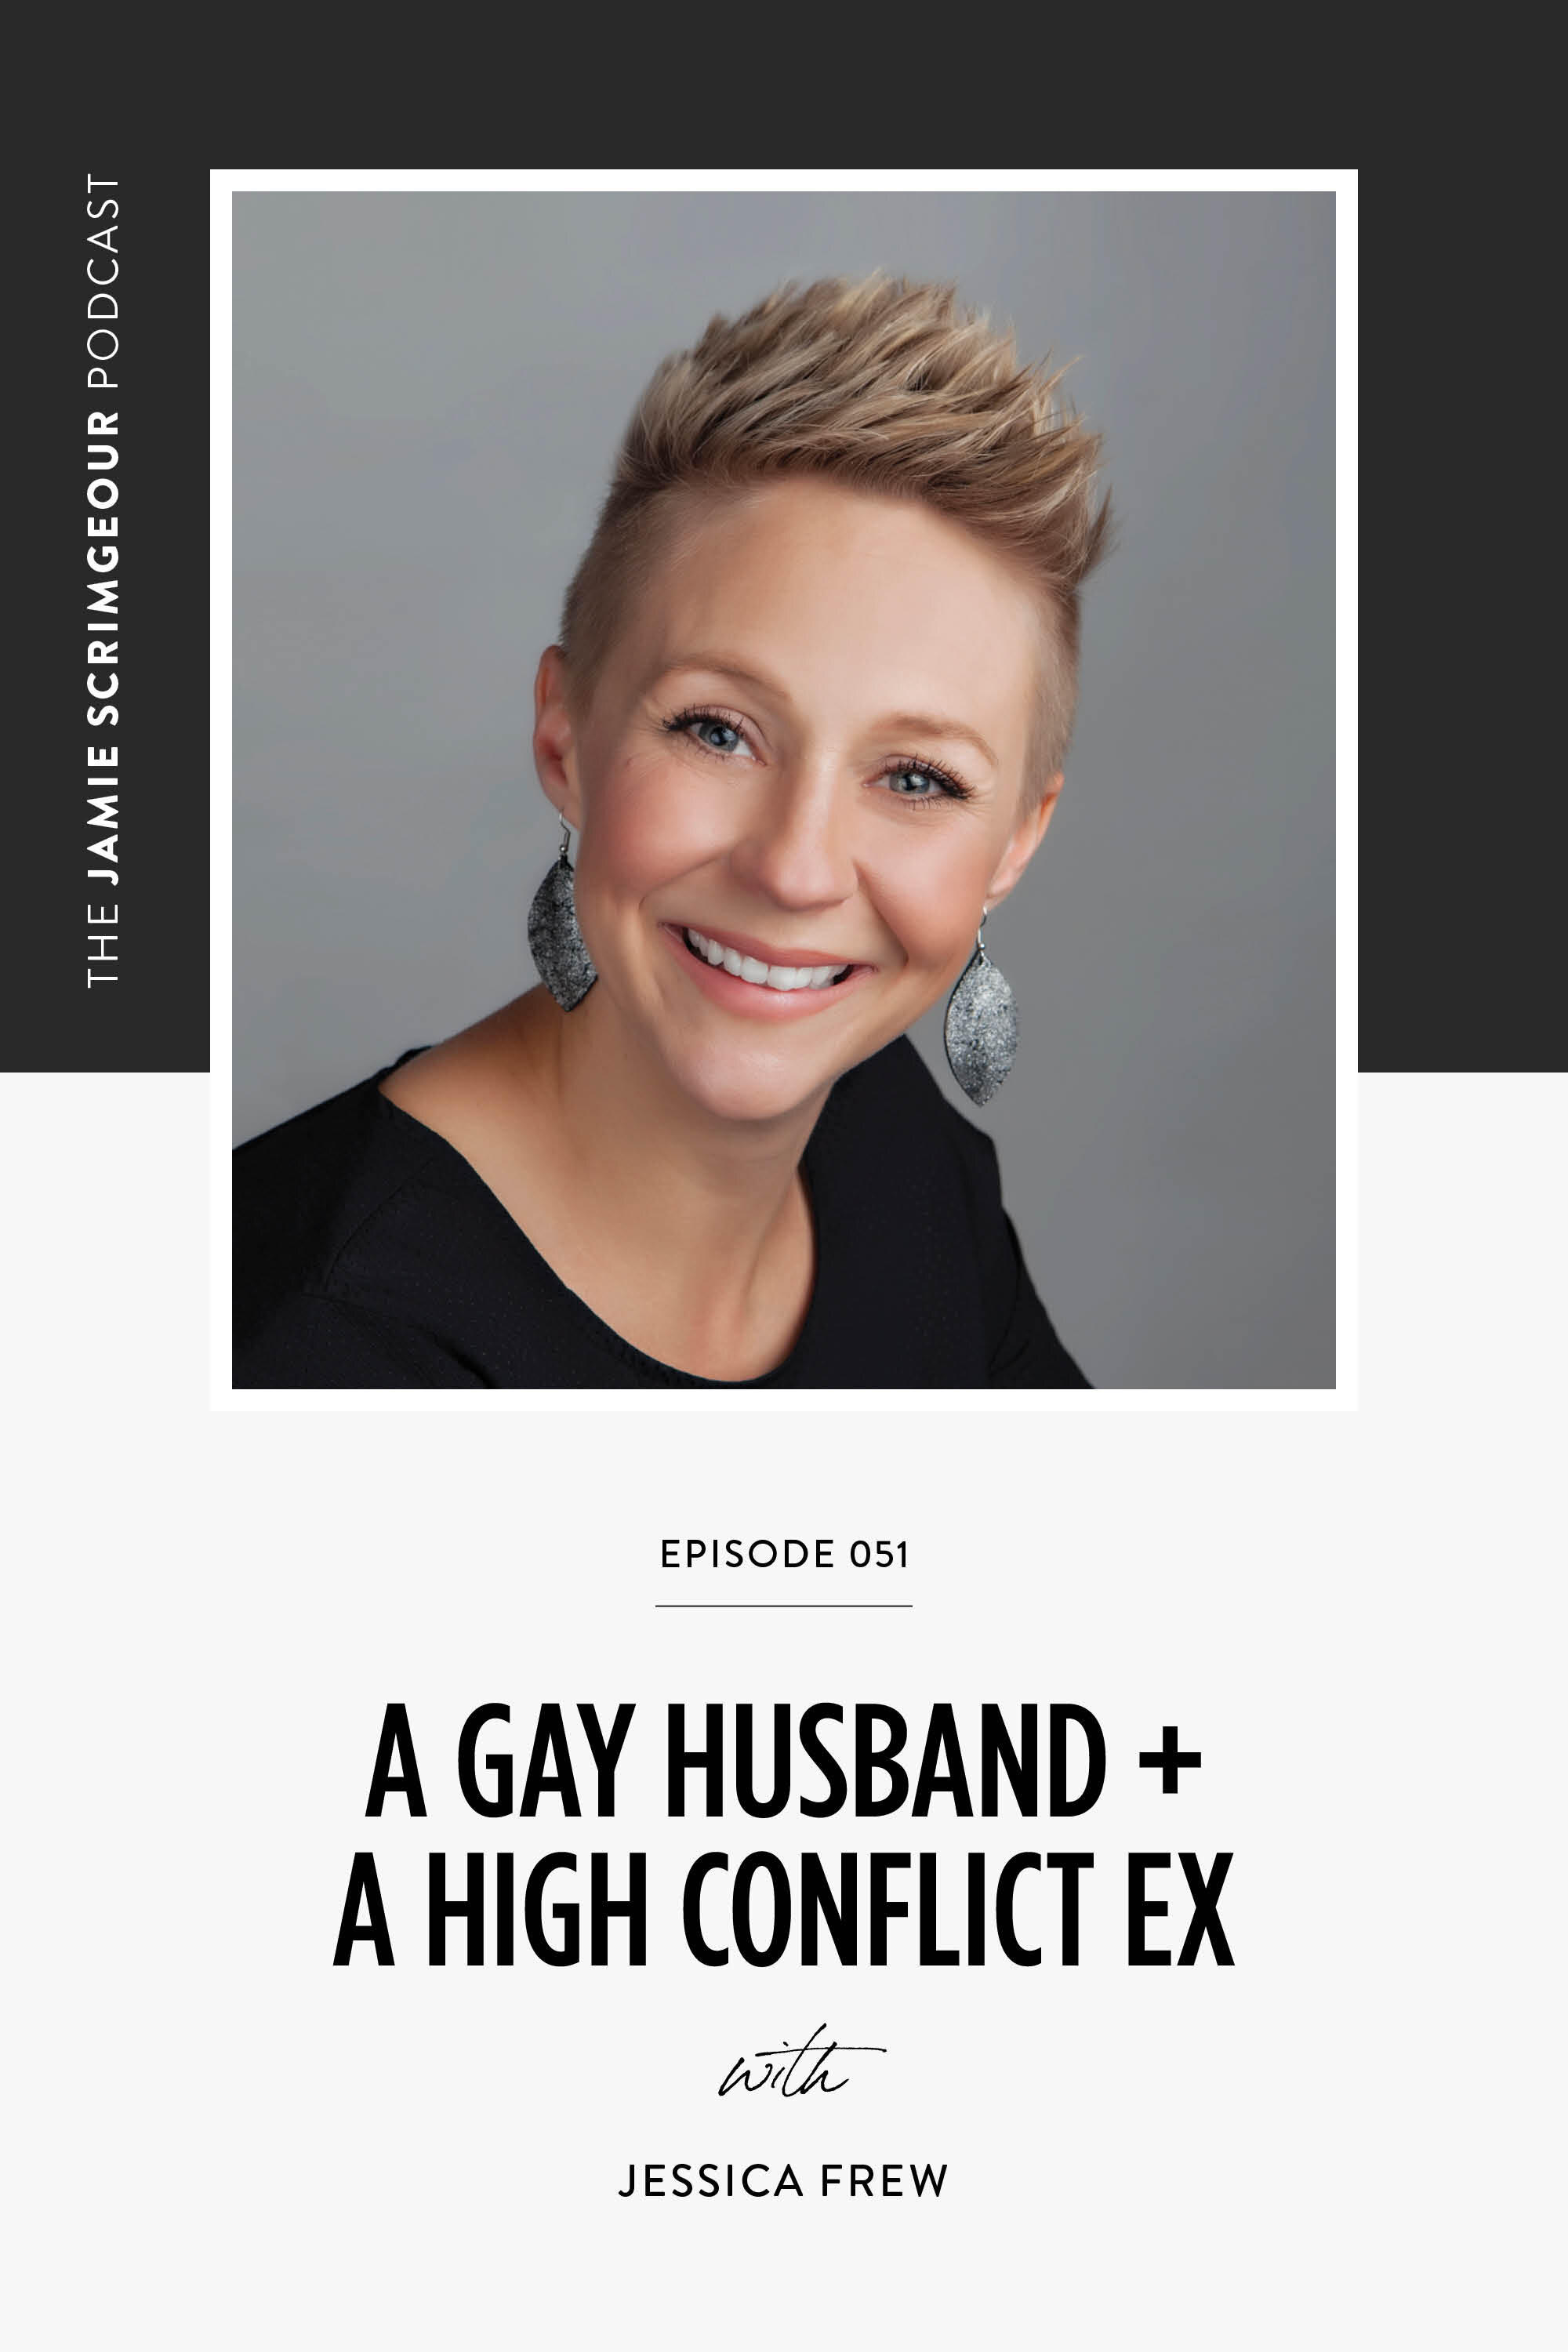 The Jamie Scrimgeour Podcast Episode 051 - A Gay Husband and a high-conflict Ex with Jessica Frew